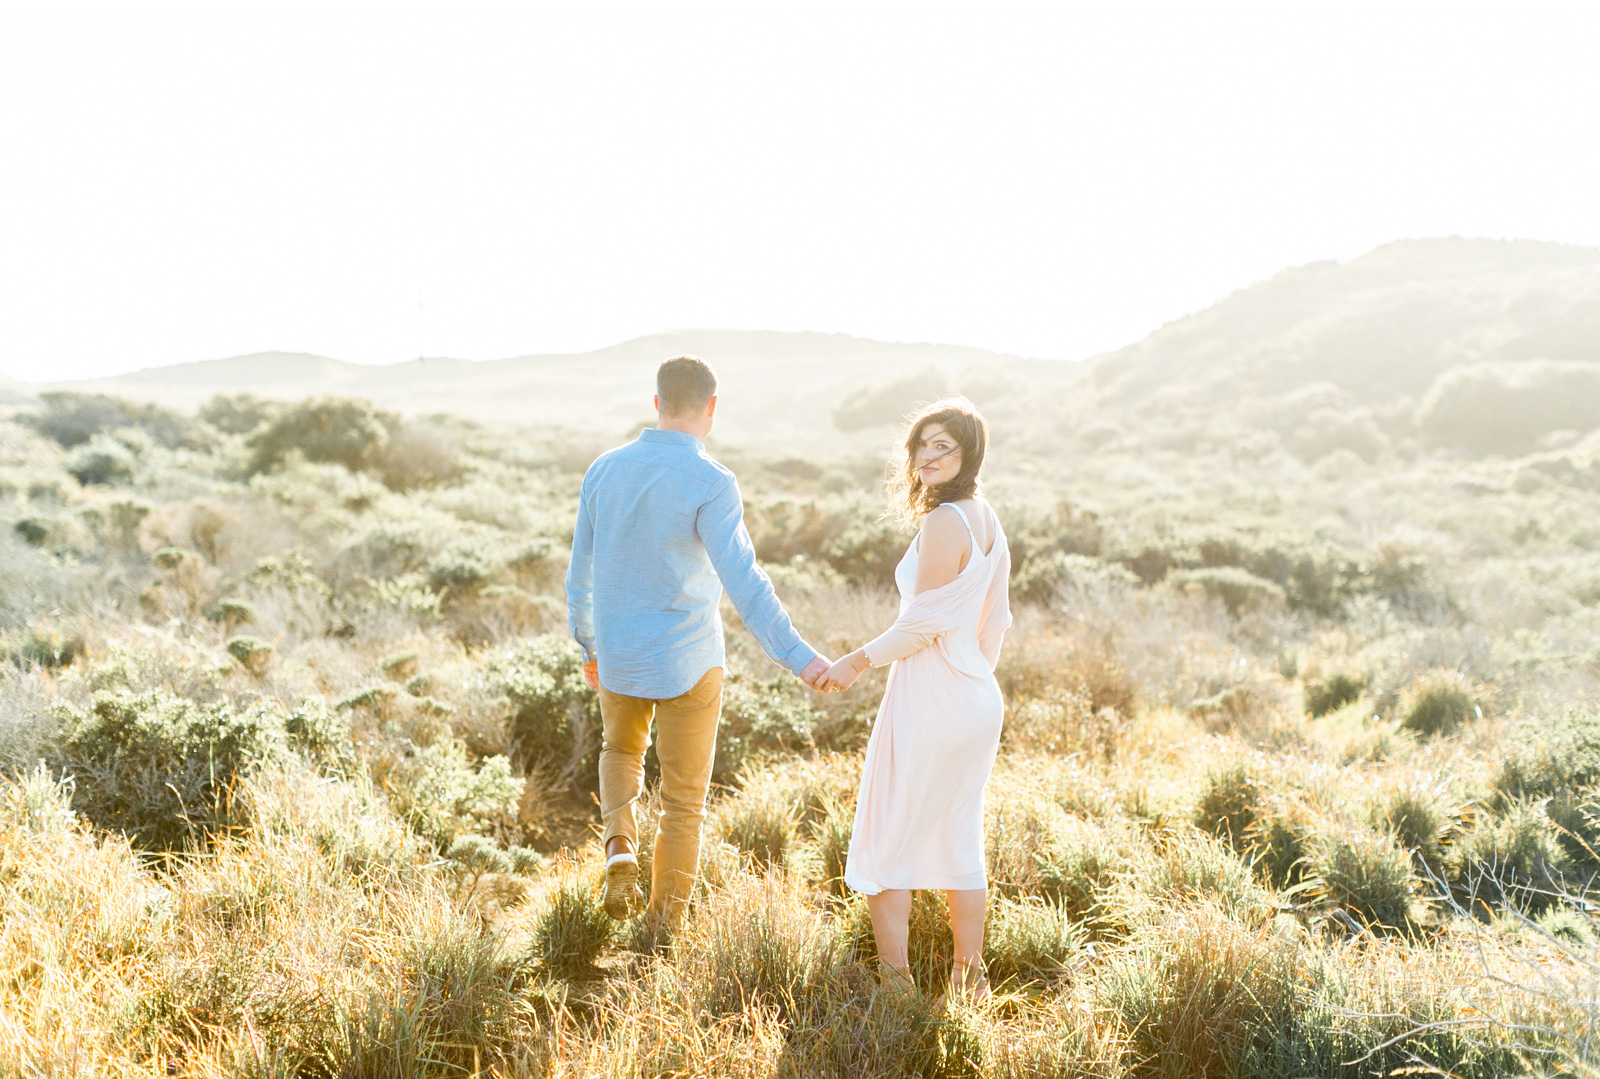 Professional-Wedding-Photographer-Southern-California-Weddings-Malibu-Engagement-Natalie-Schutt-Photography-Style-Me-Pretty-Beachside-Engagement_04.jpg